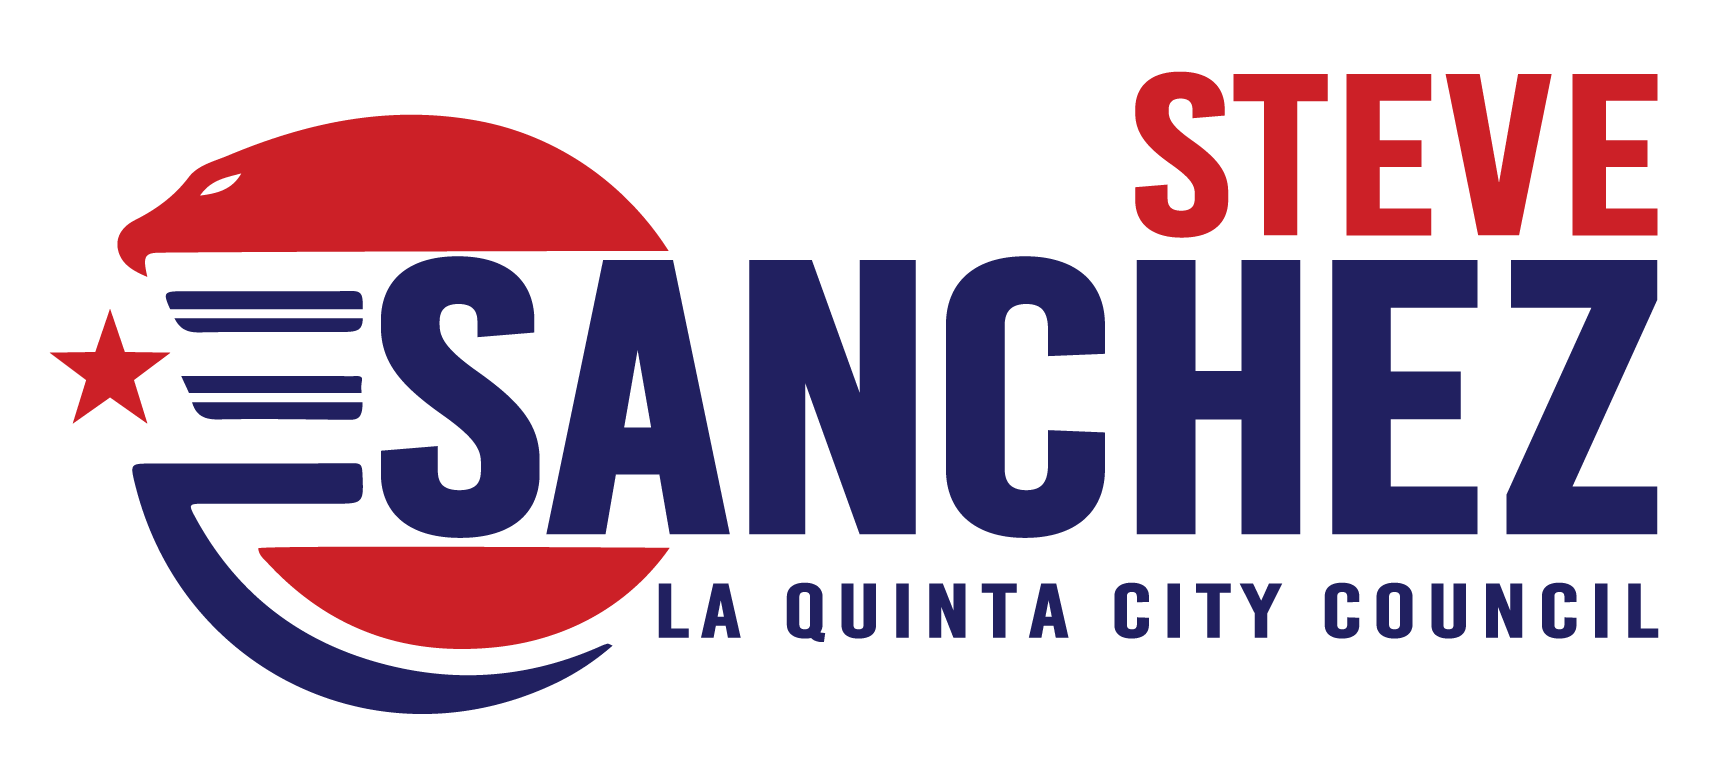 Re-elect Councilman Steve Sanchez